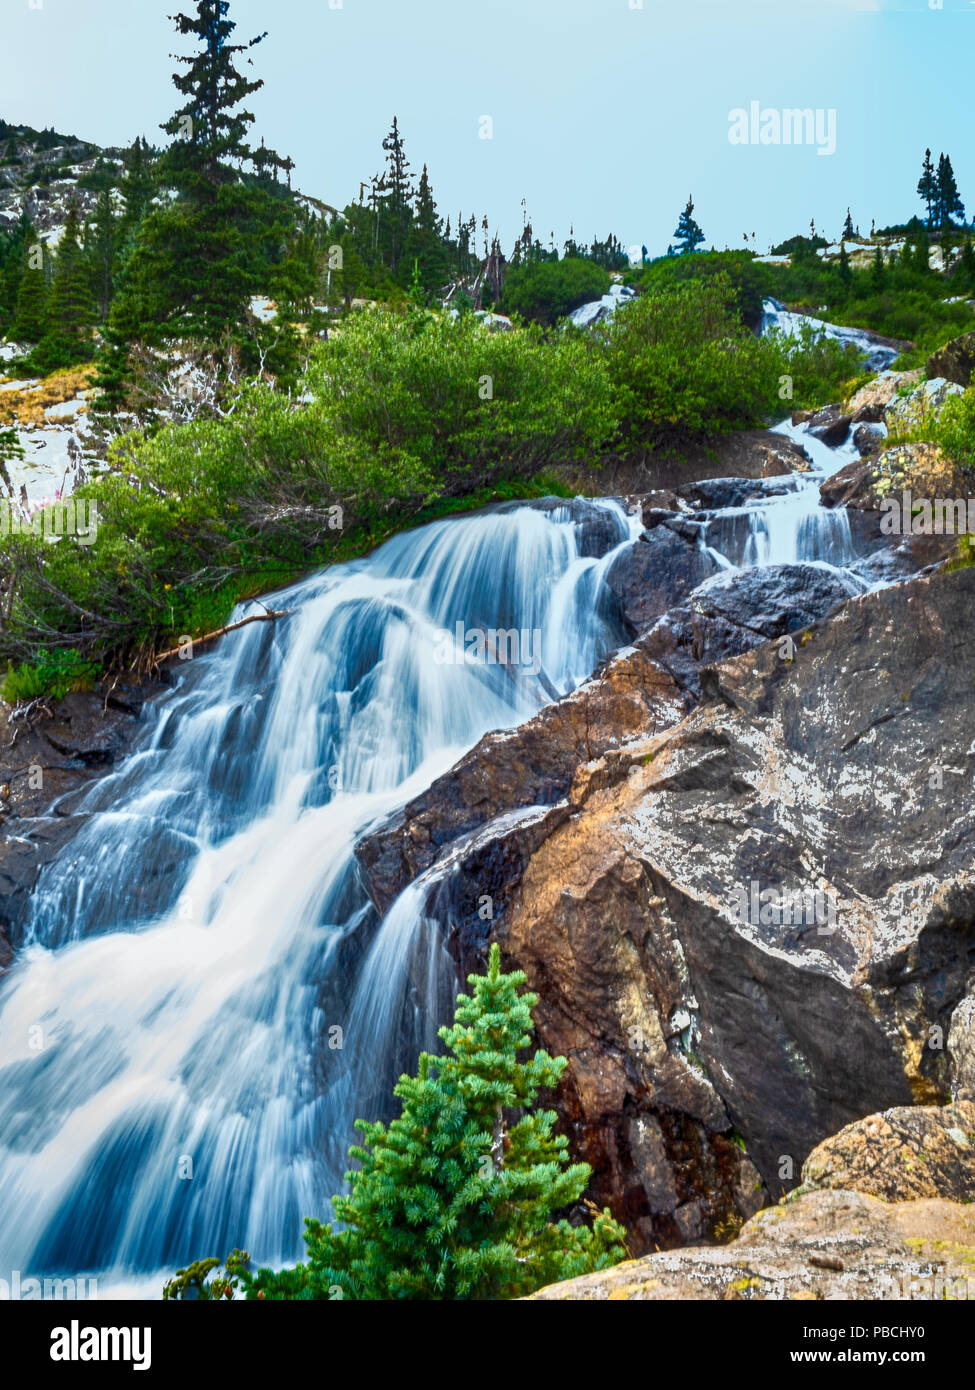 Waterfall on the MCCullough Gulch Trail in Summit County, Colorado - Stock Image